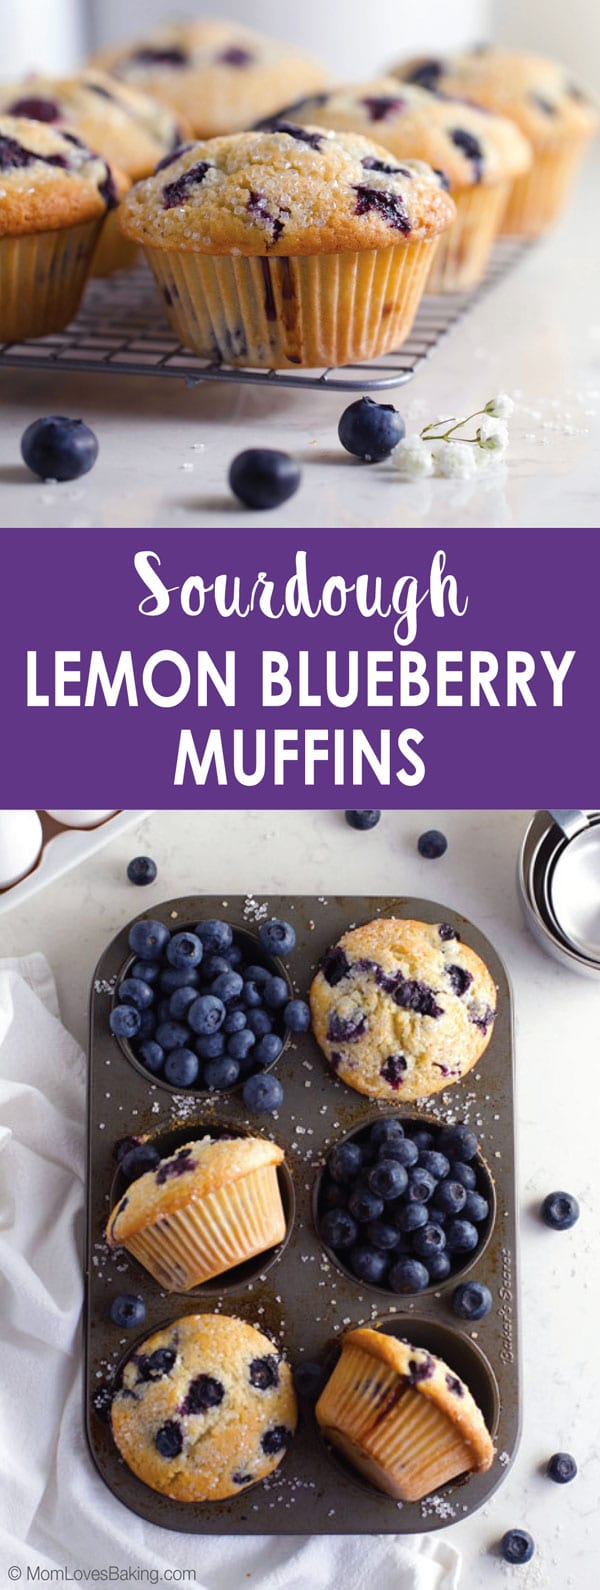 Sourdough Lemon Blueberry Muffins in muffin pan